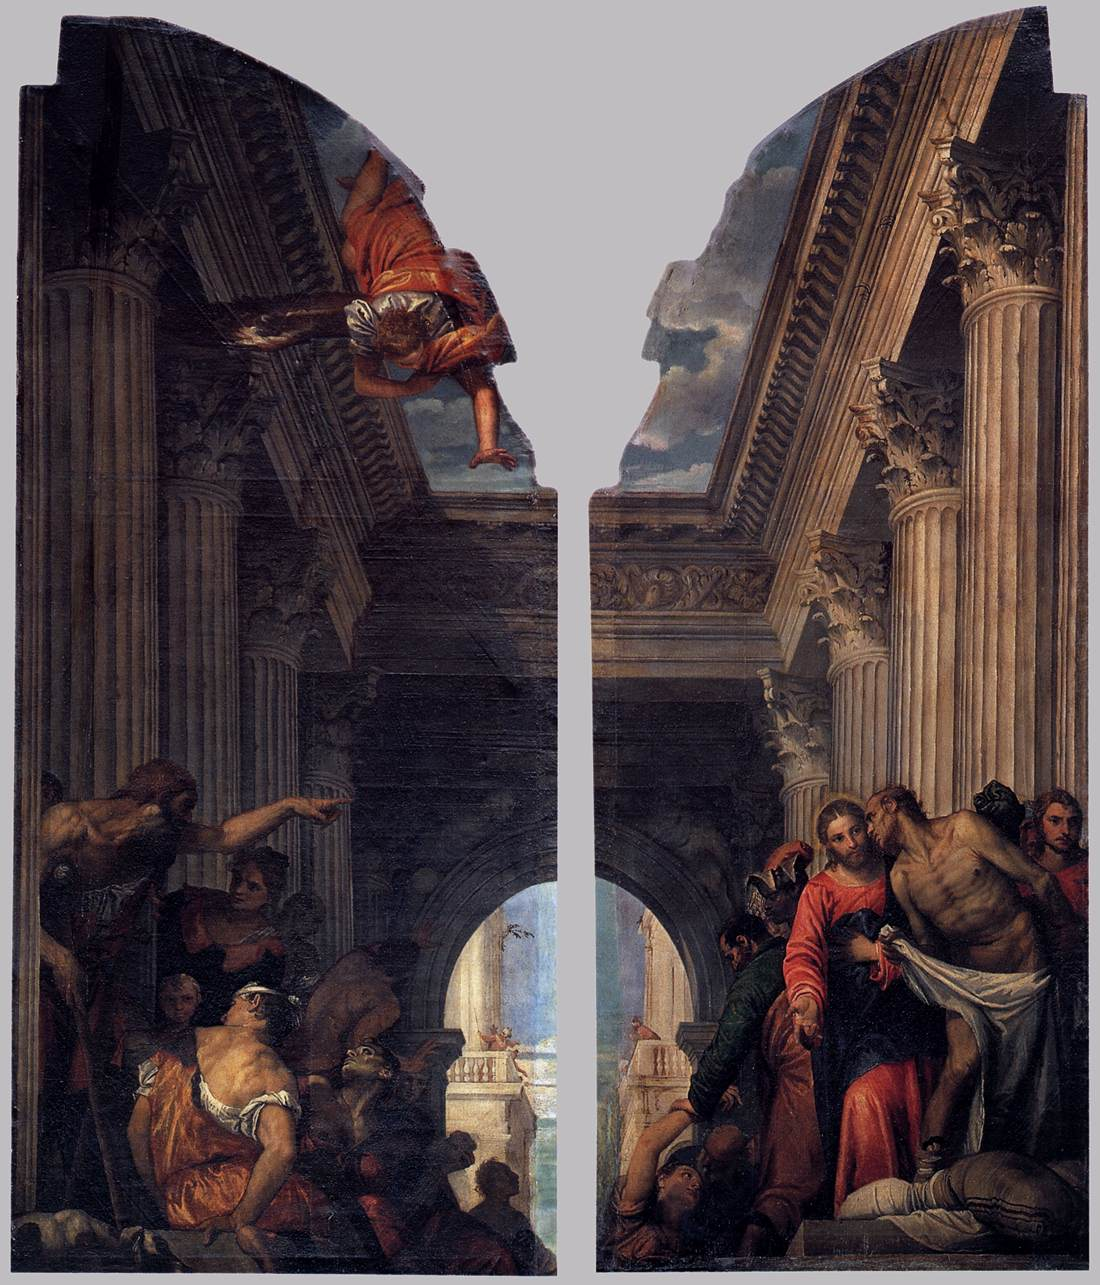 https://upload.wikimedia.org/wikipedia/commons/c/c4/Paolo_Veronese_-_Healing_of_the_Lame_Man_at_the_Pool_of_Bethesda_-_WGA24794.jpg